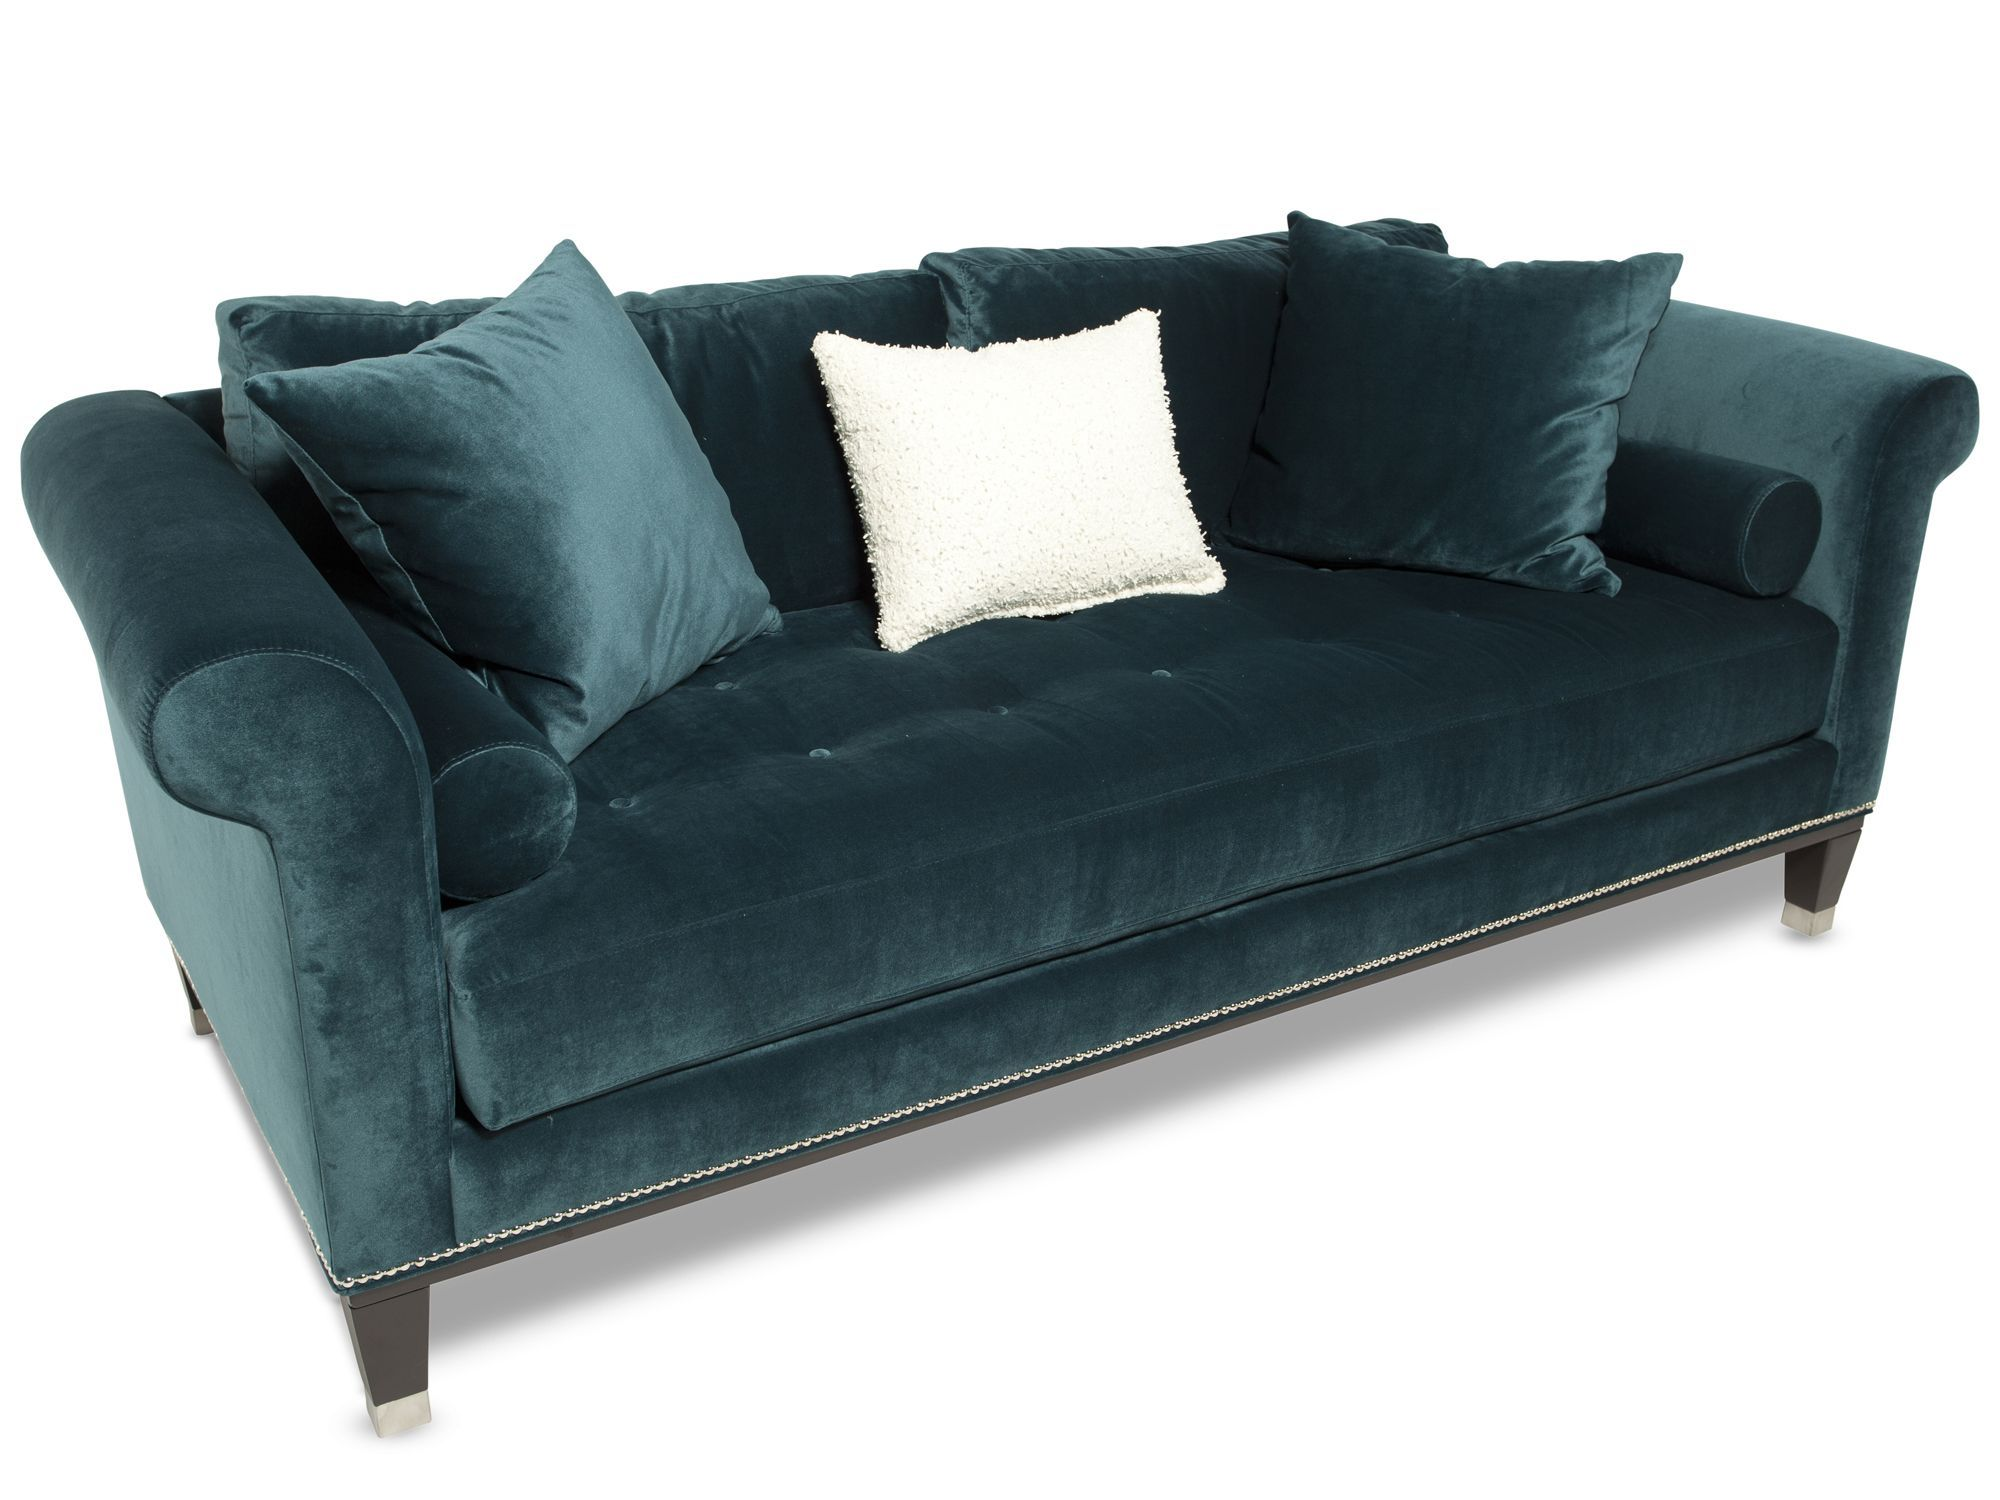 This is the sofa I want to Jonathan Louis Turner Sofa